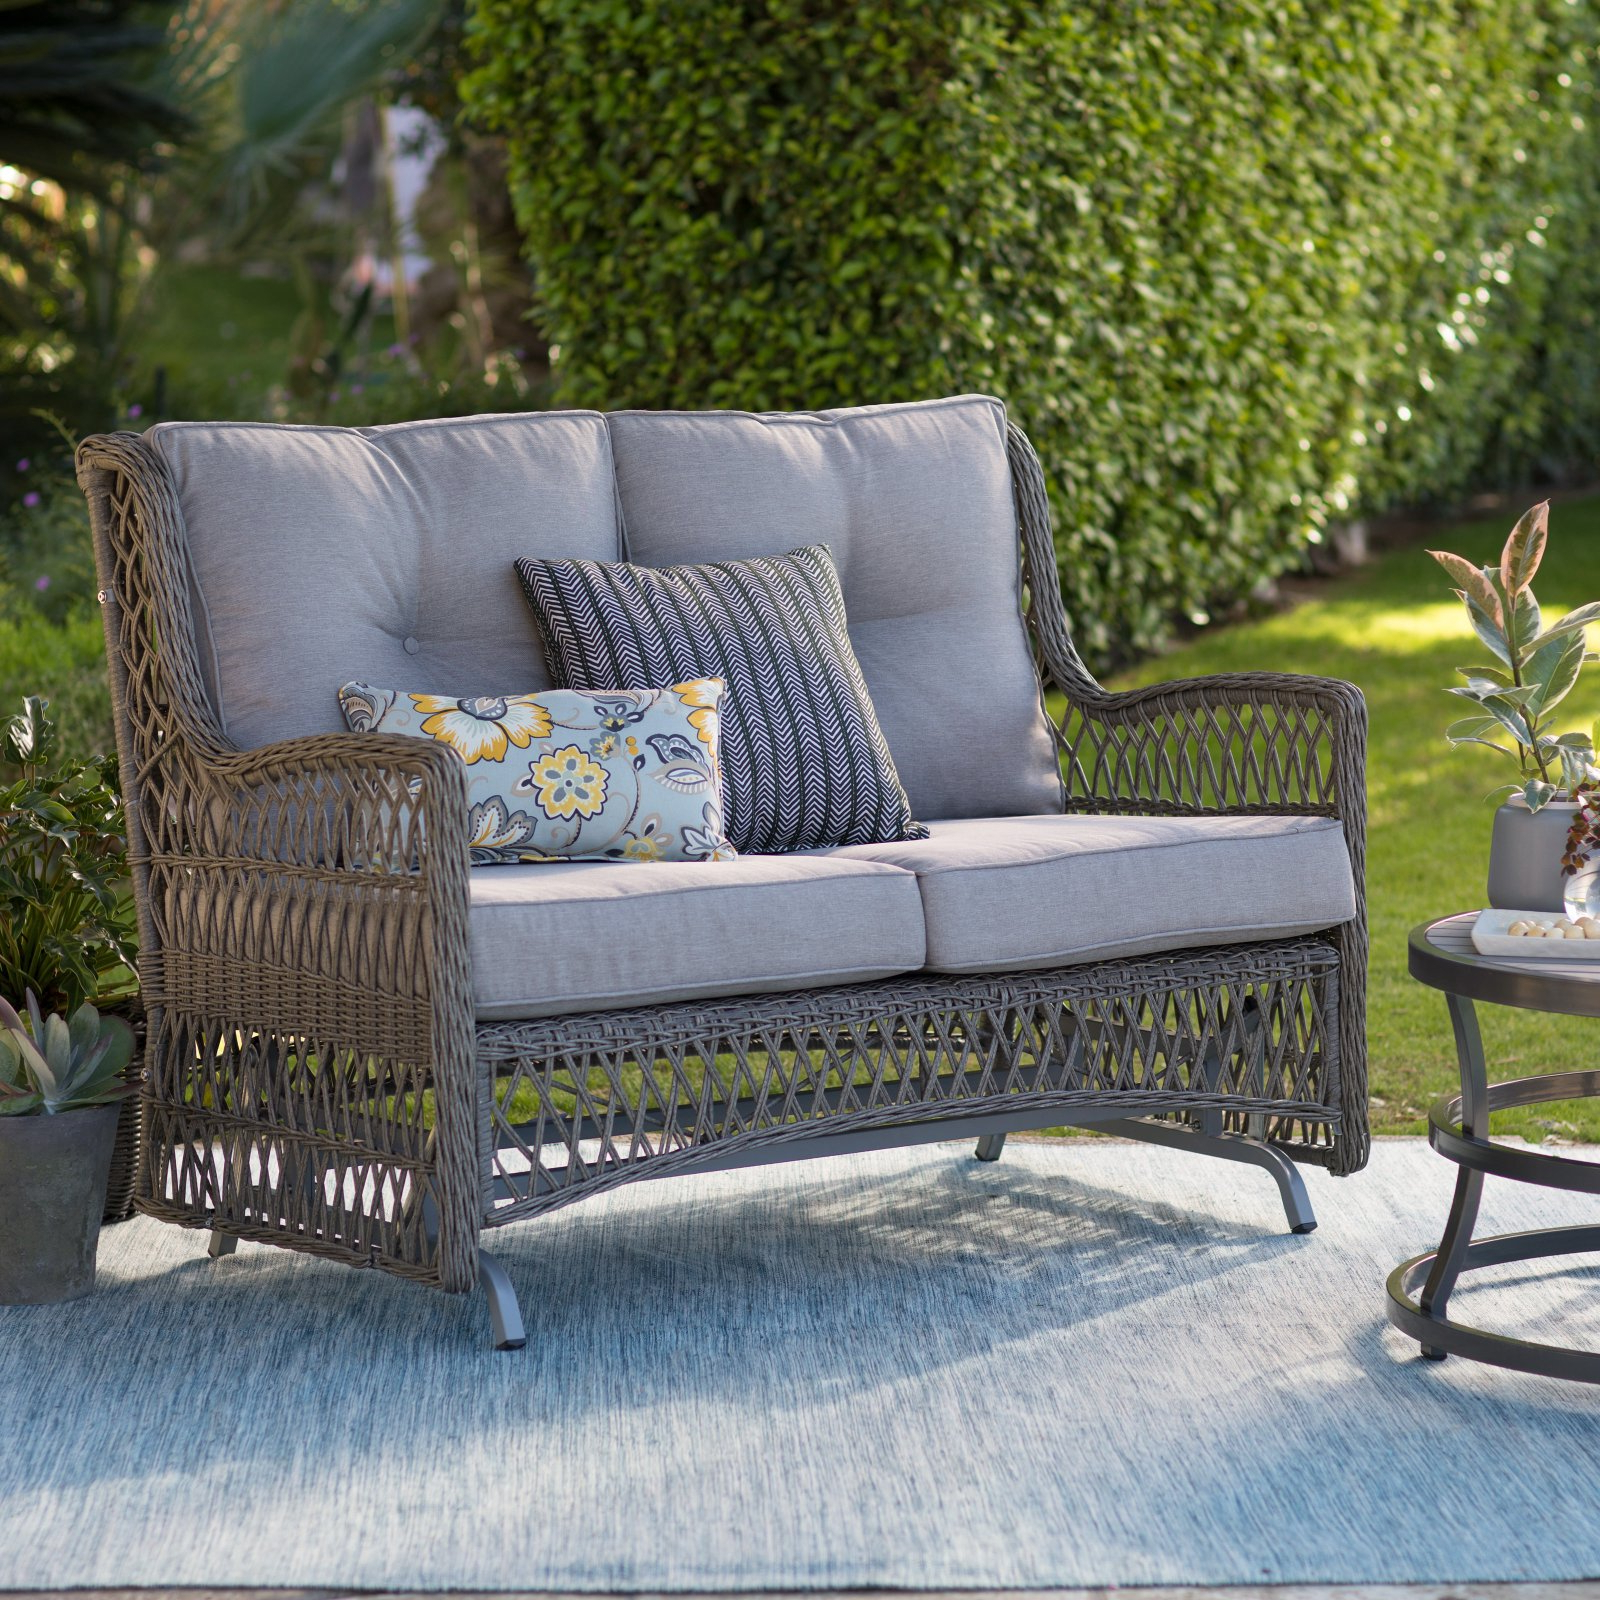 Belham Living Bristol Outdoor Glider Bench With Cushions With Most Up To Date Bristol Loveseats With Cushions (View 1 of 20)